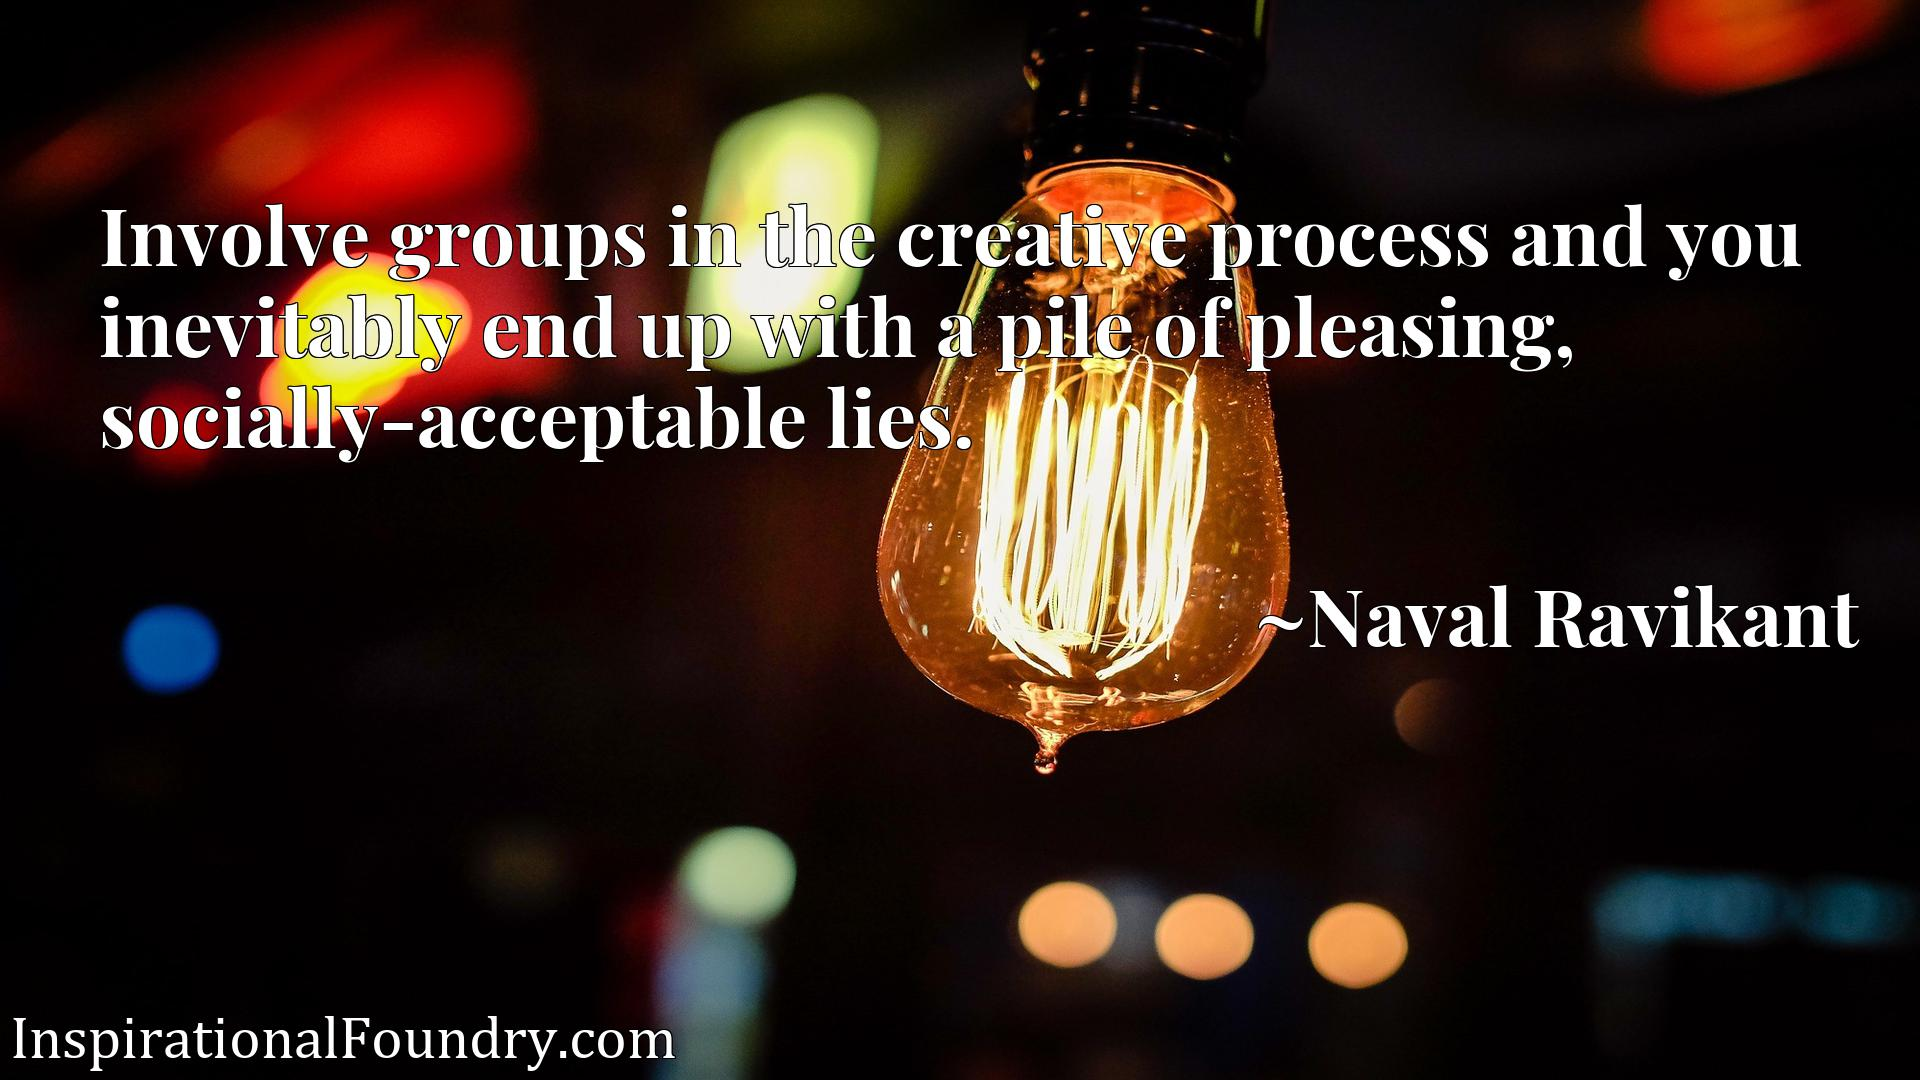 Involve groups in the creative process and you inevitably end up with a pile of pleasing, socially-acceptable lies.